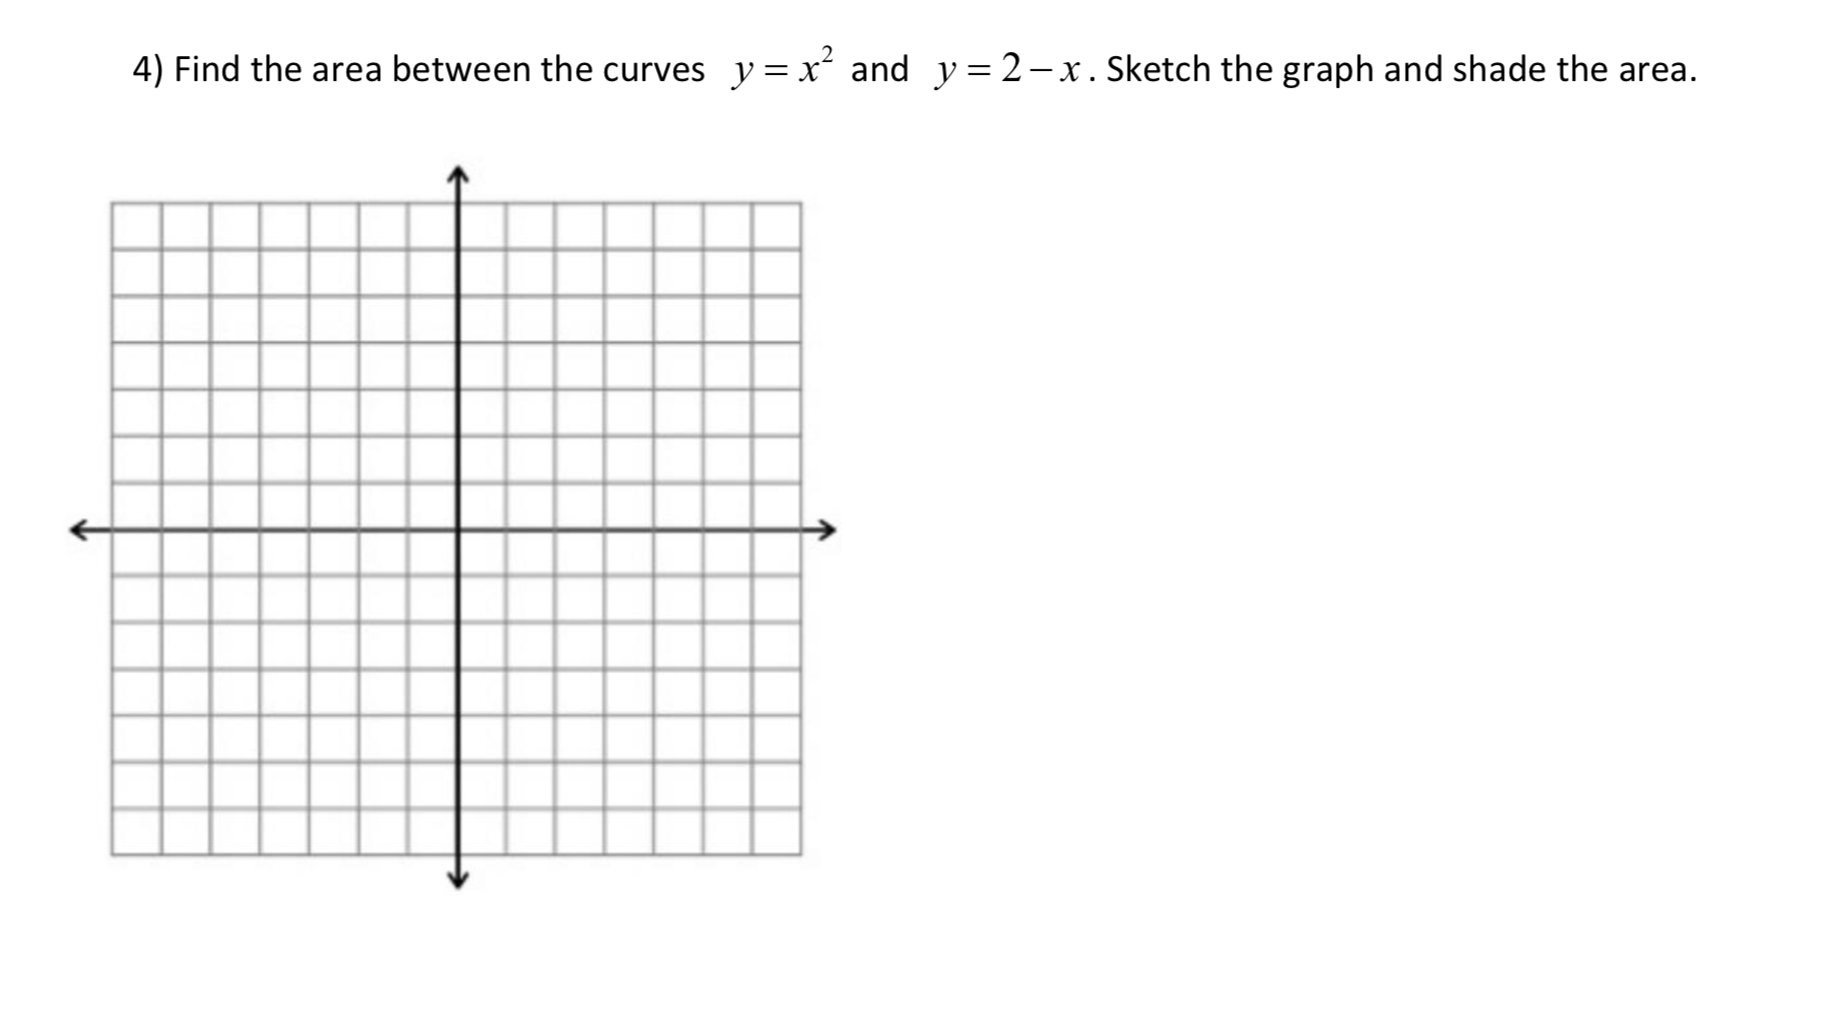 Answered 4 Find The Area Between The Curves Y